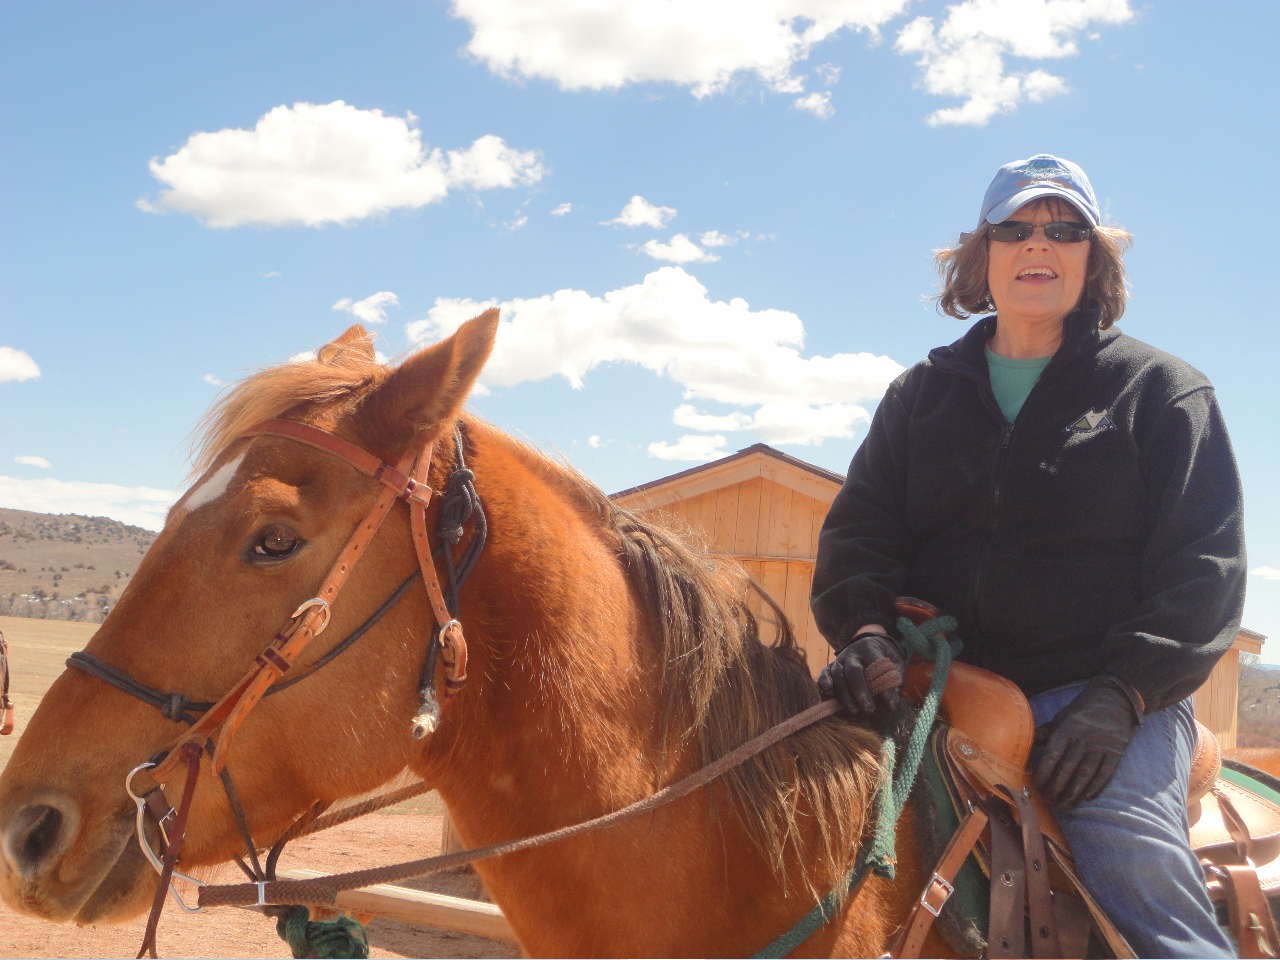 Writer Kate Kingston riding horses at Brush Creek Foundation for the Arts in Wyoming (Photo courtesy the author)